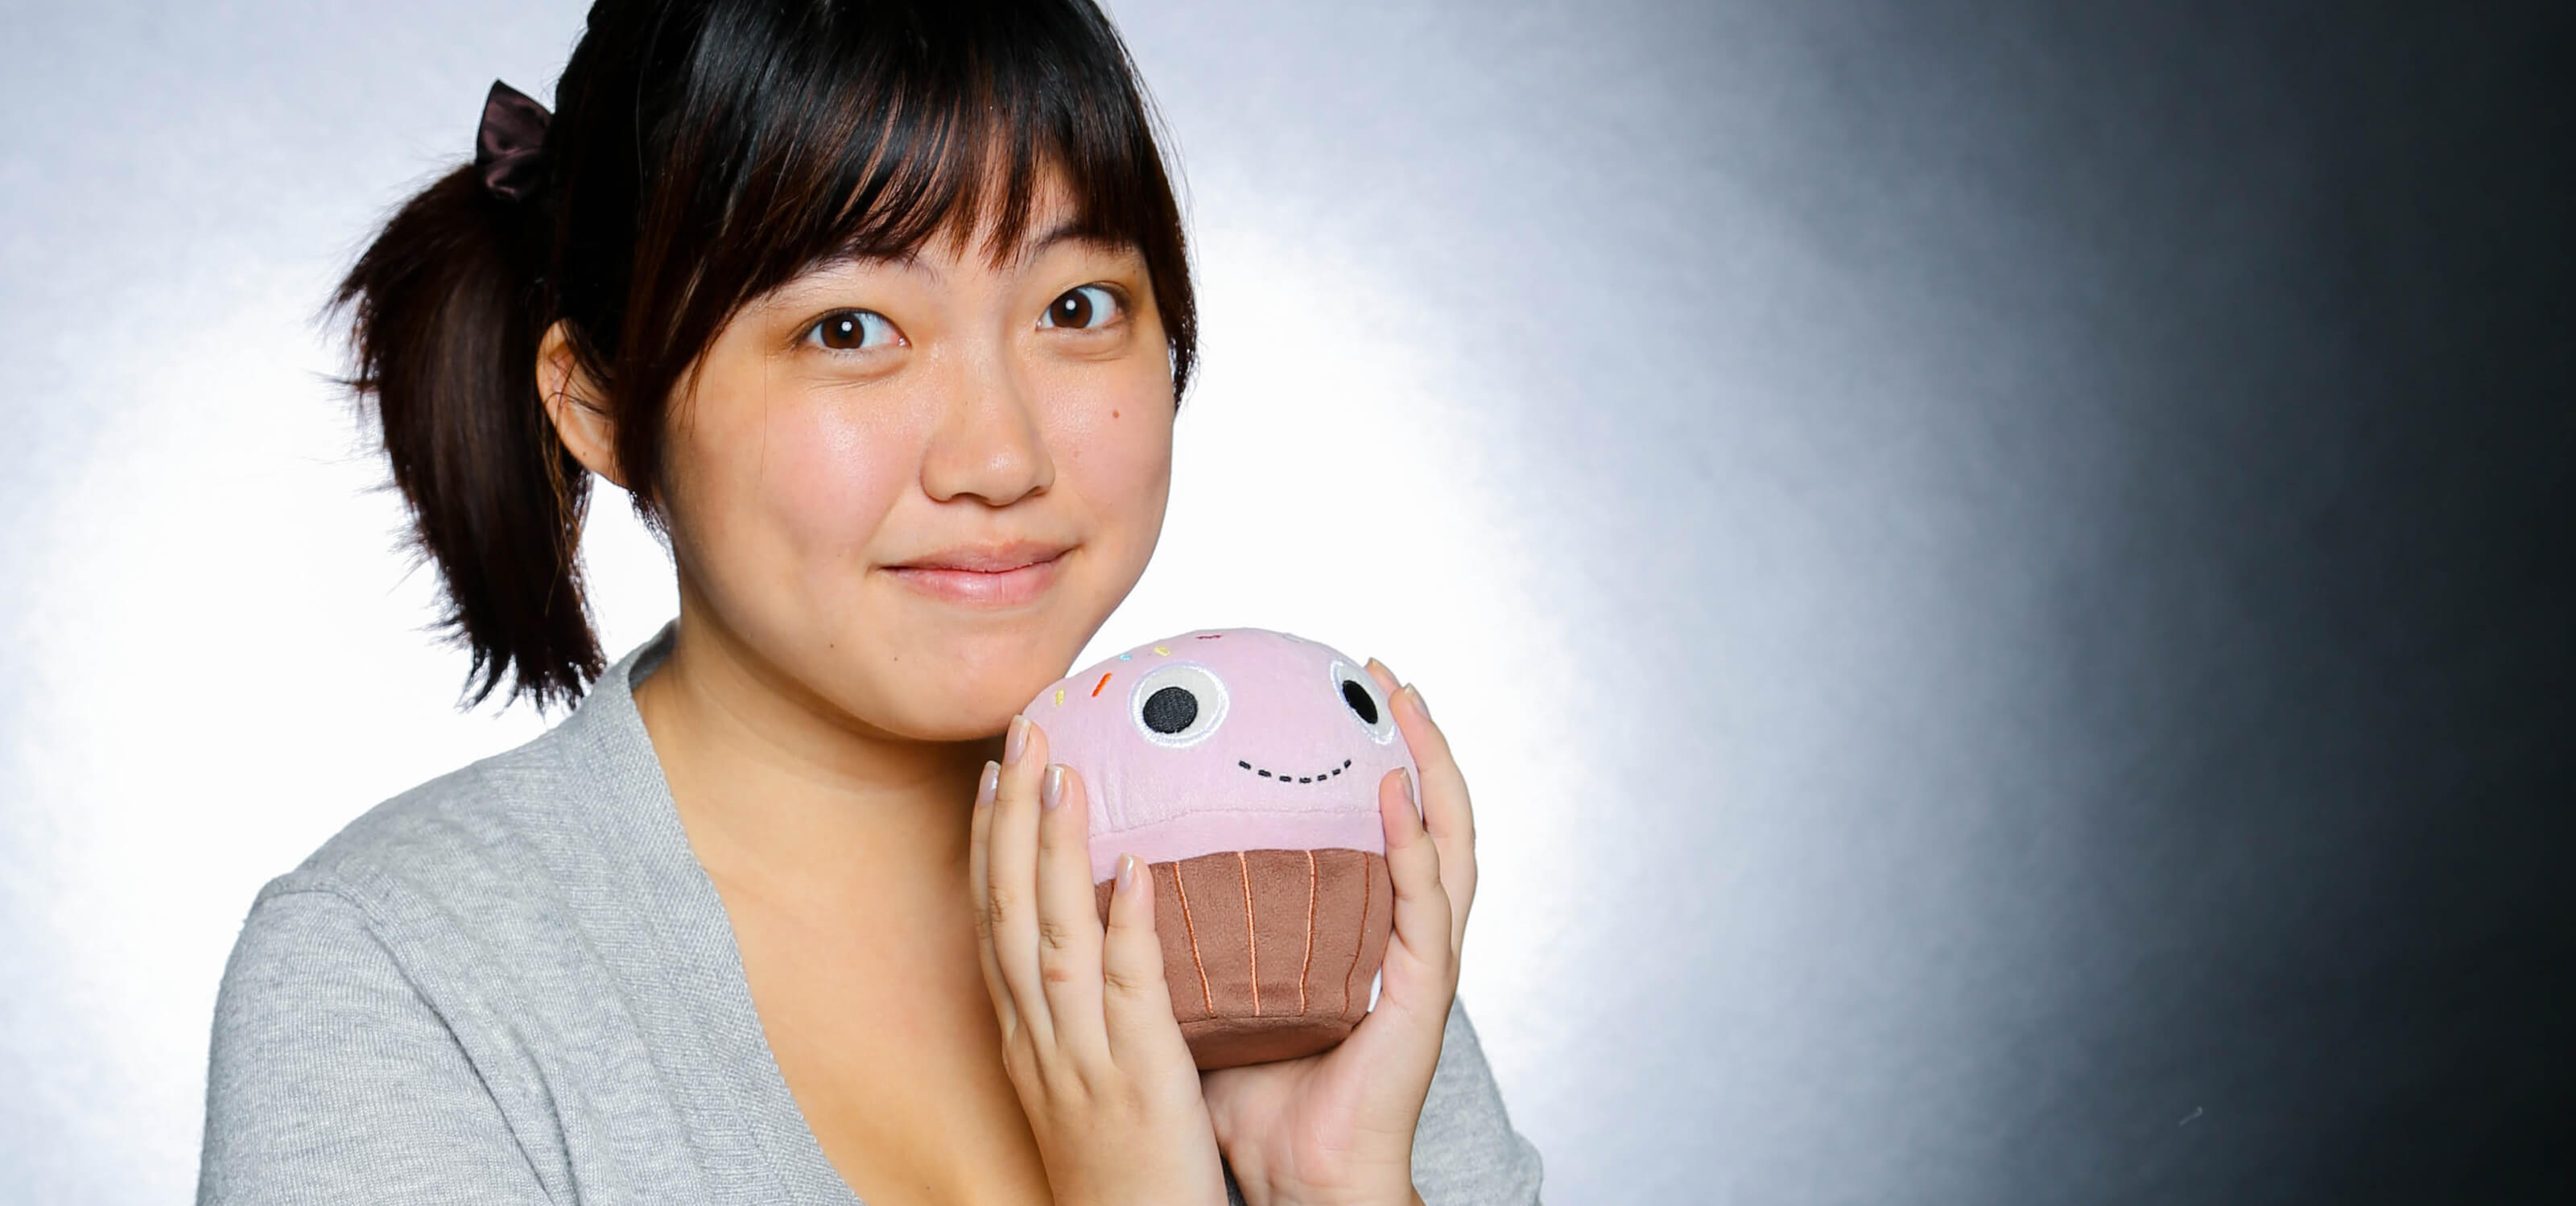 DigiPen alumna Jessica Nam posing with a cupcake-shaped plush toy